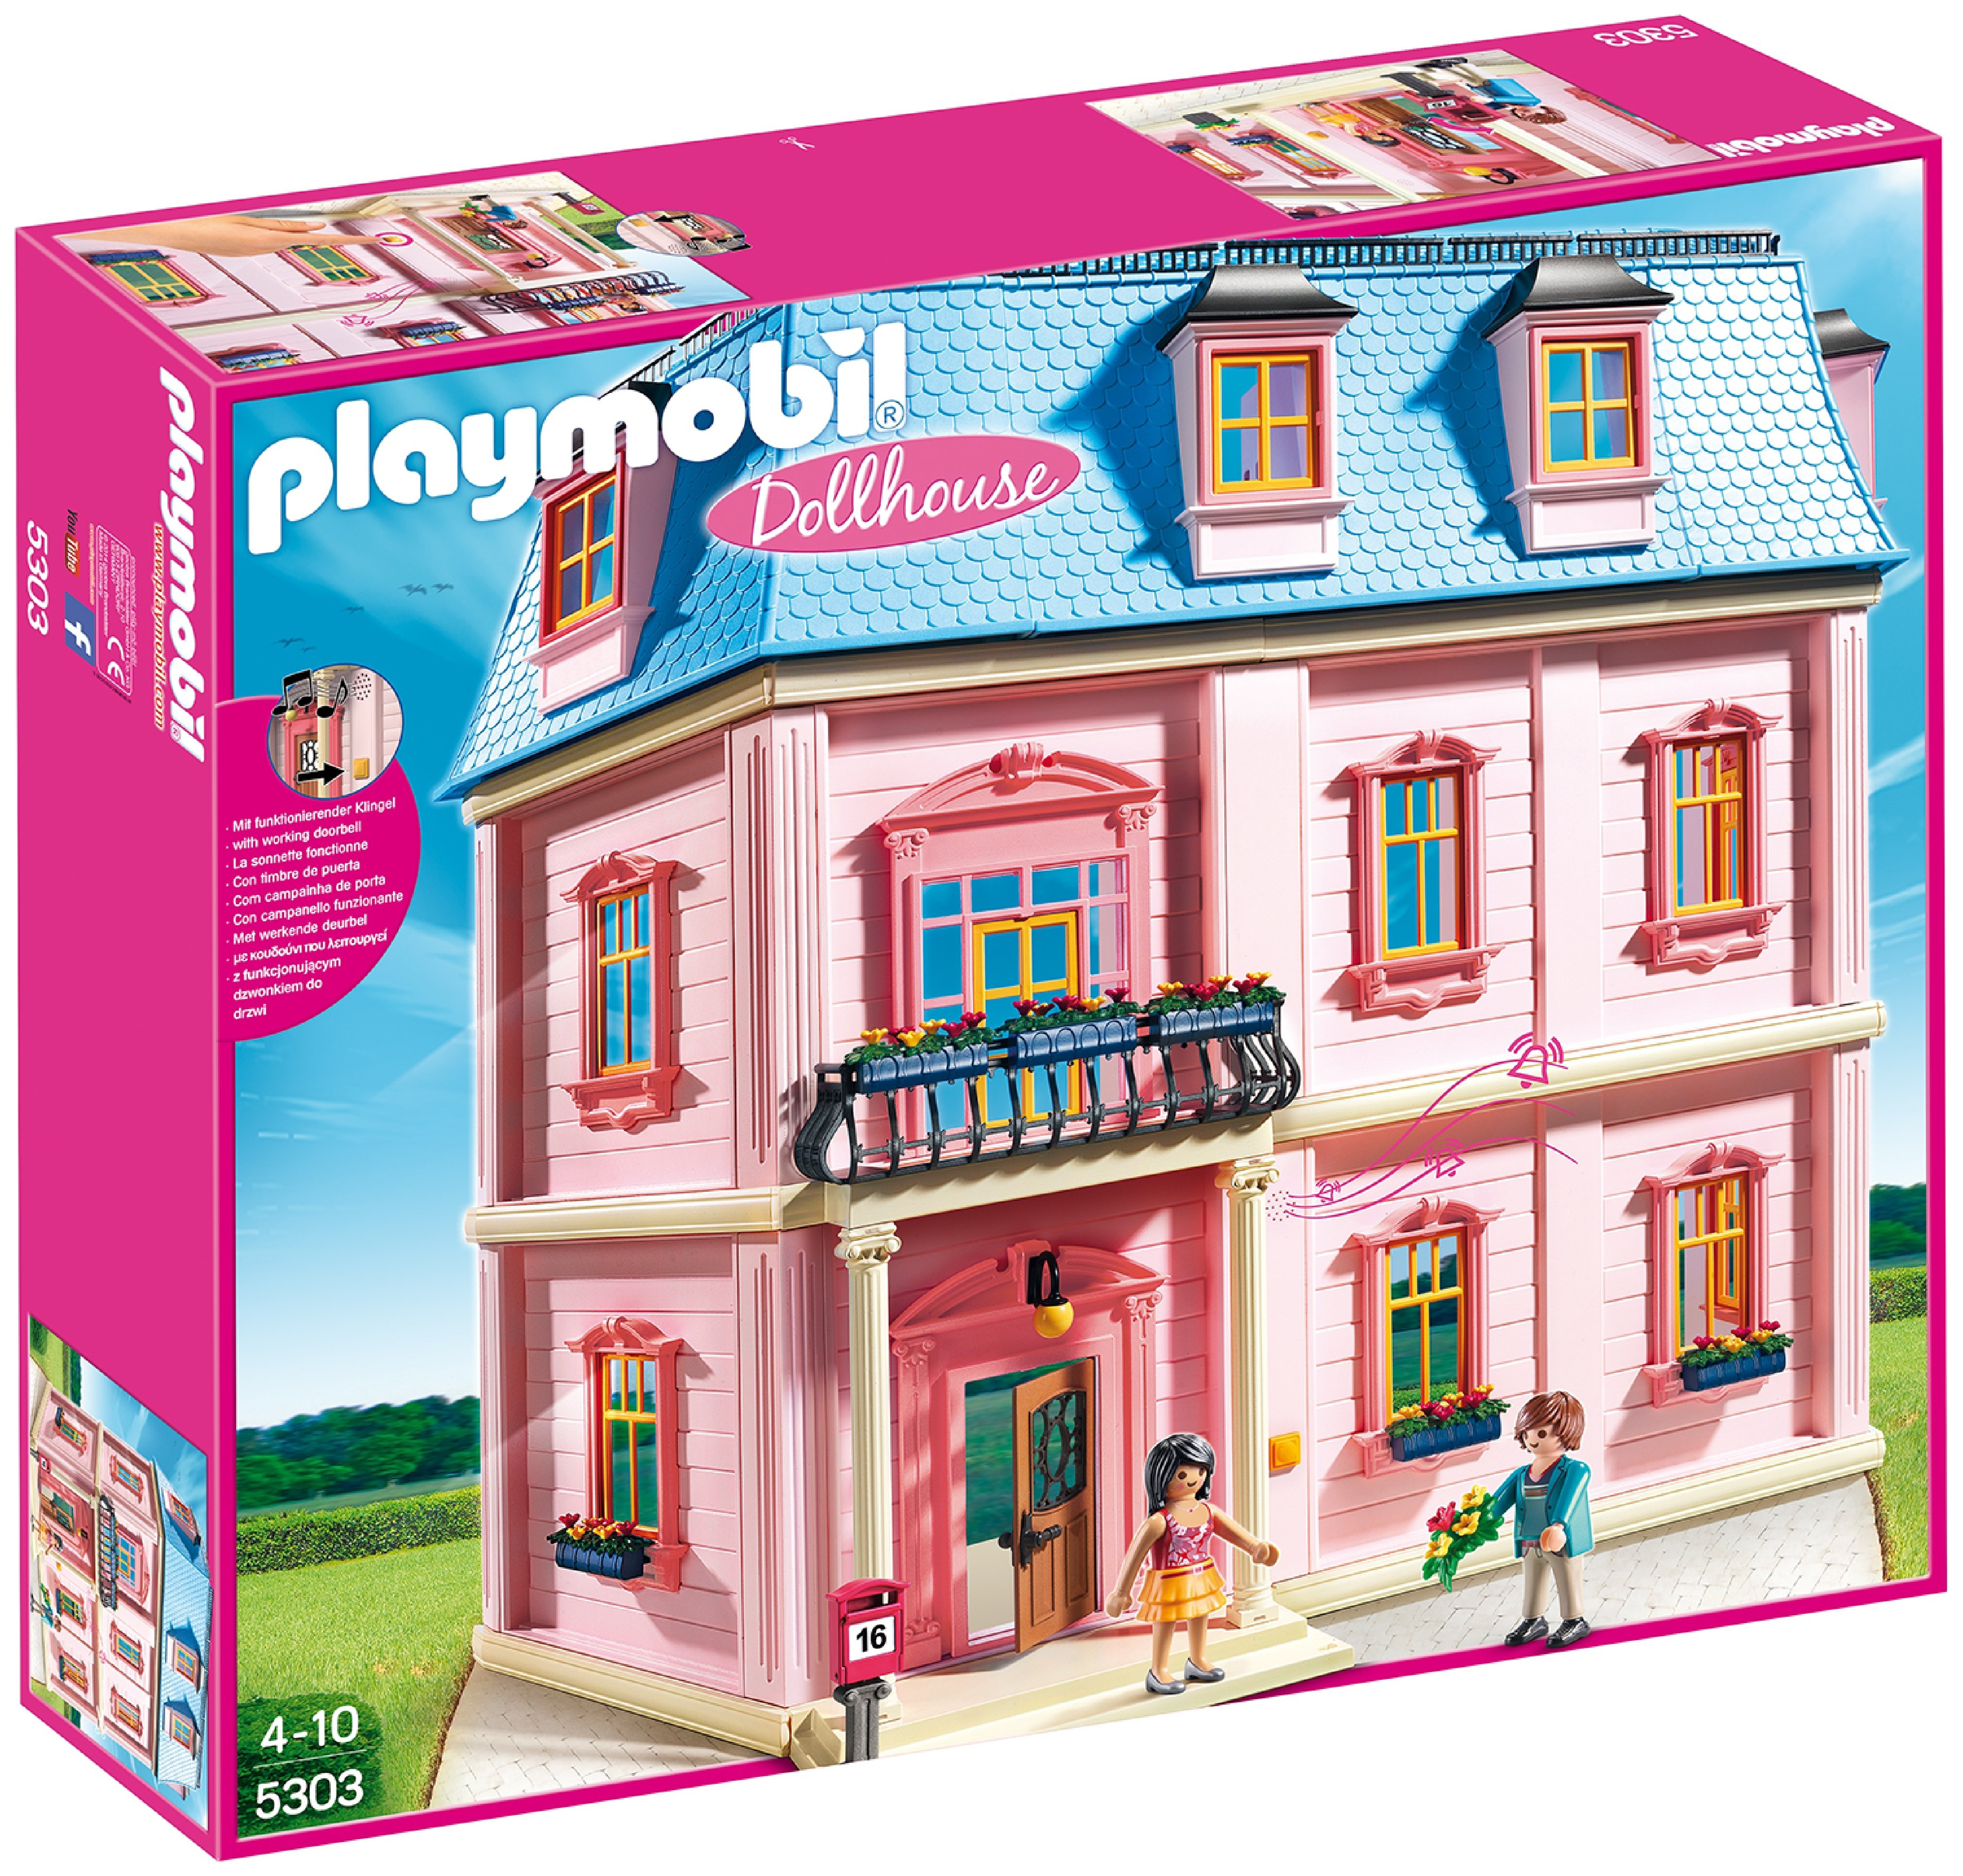 playmobil 5303 deluxe dollhouse.